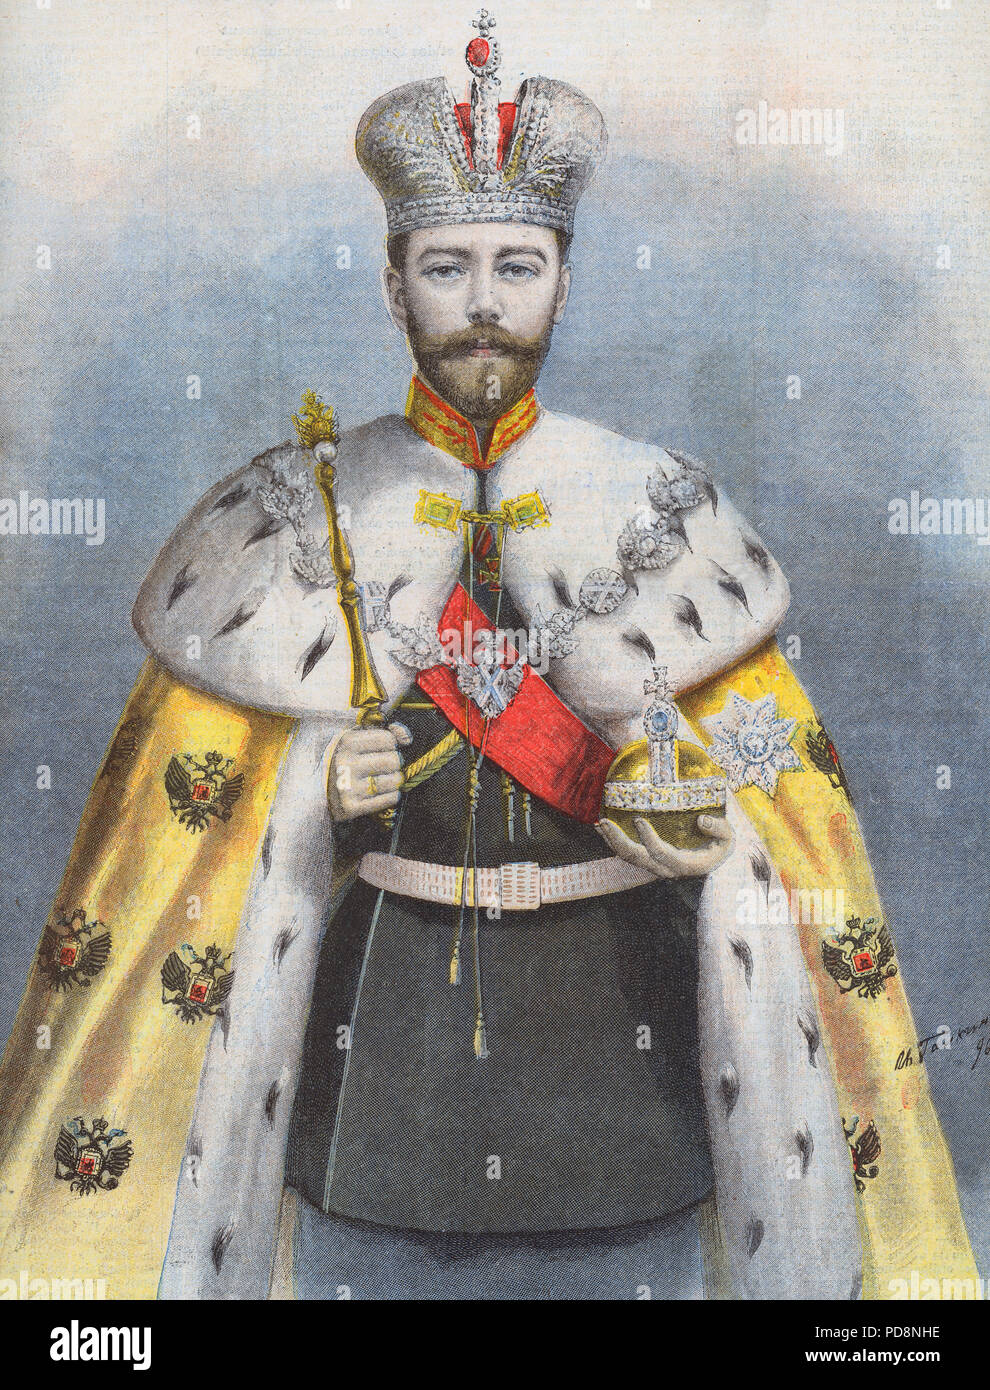 Tsar Nicholas II of Russia. 1868-1918. The last emperor of Russia. Illustration from Le Petit Journal 24 May 1896 in connection with his coronation in Moscow. - Stock Image